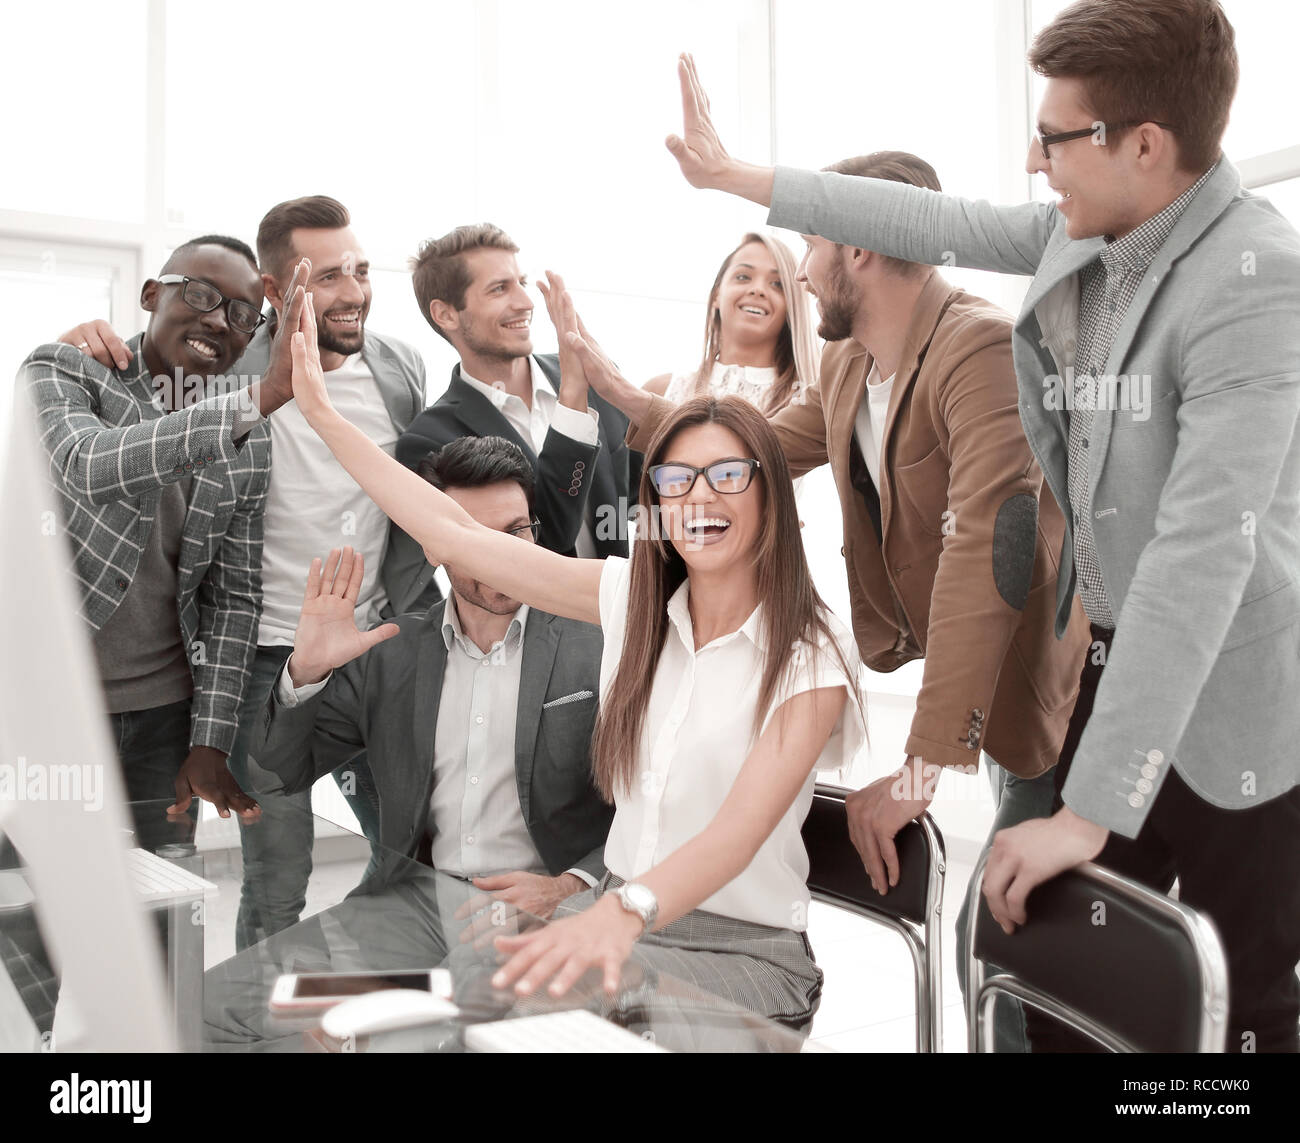 Ambitious Business Team Celebrating Success In The Office Stock Photo Alamy